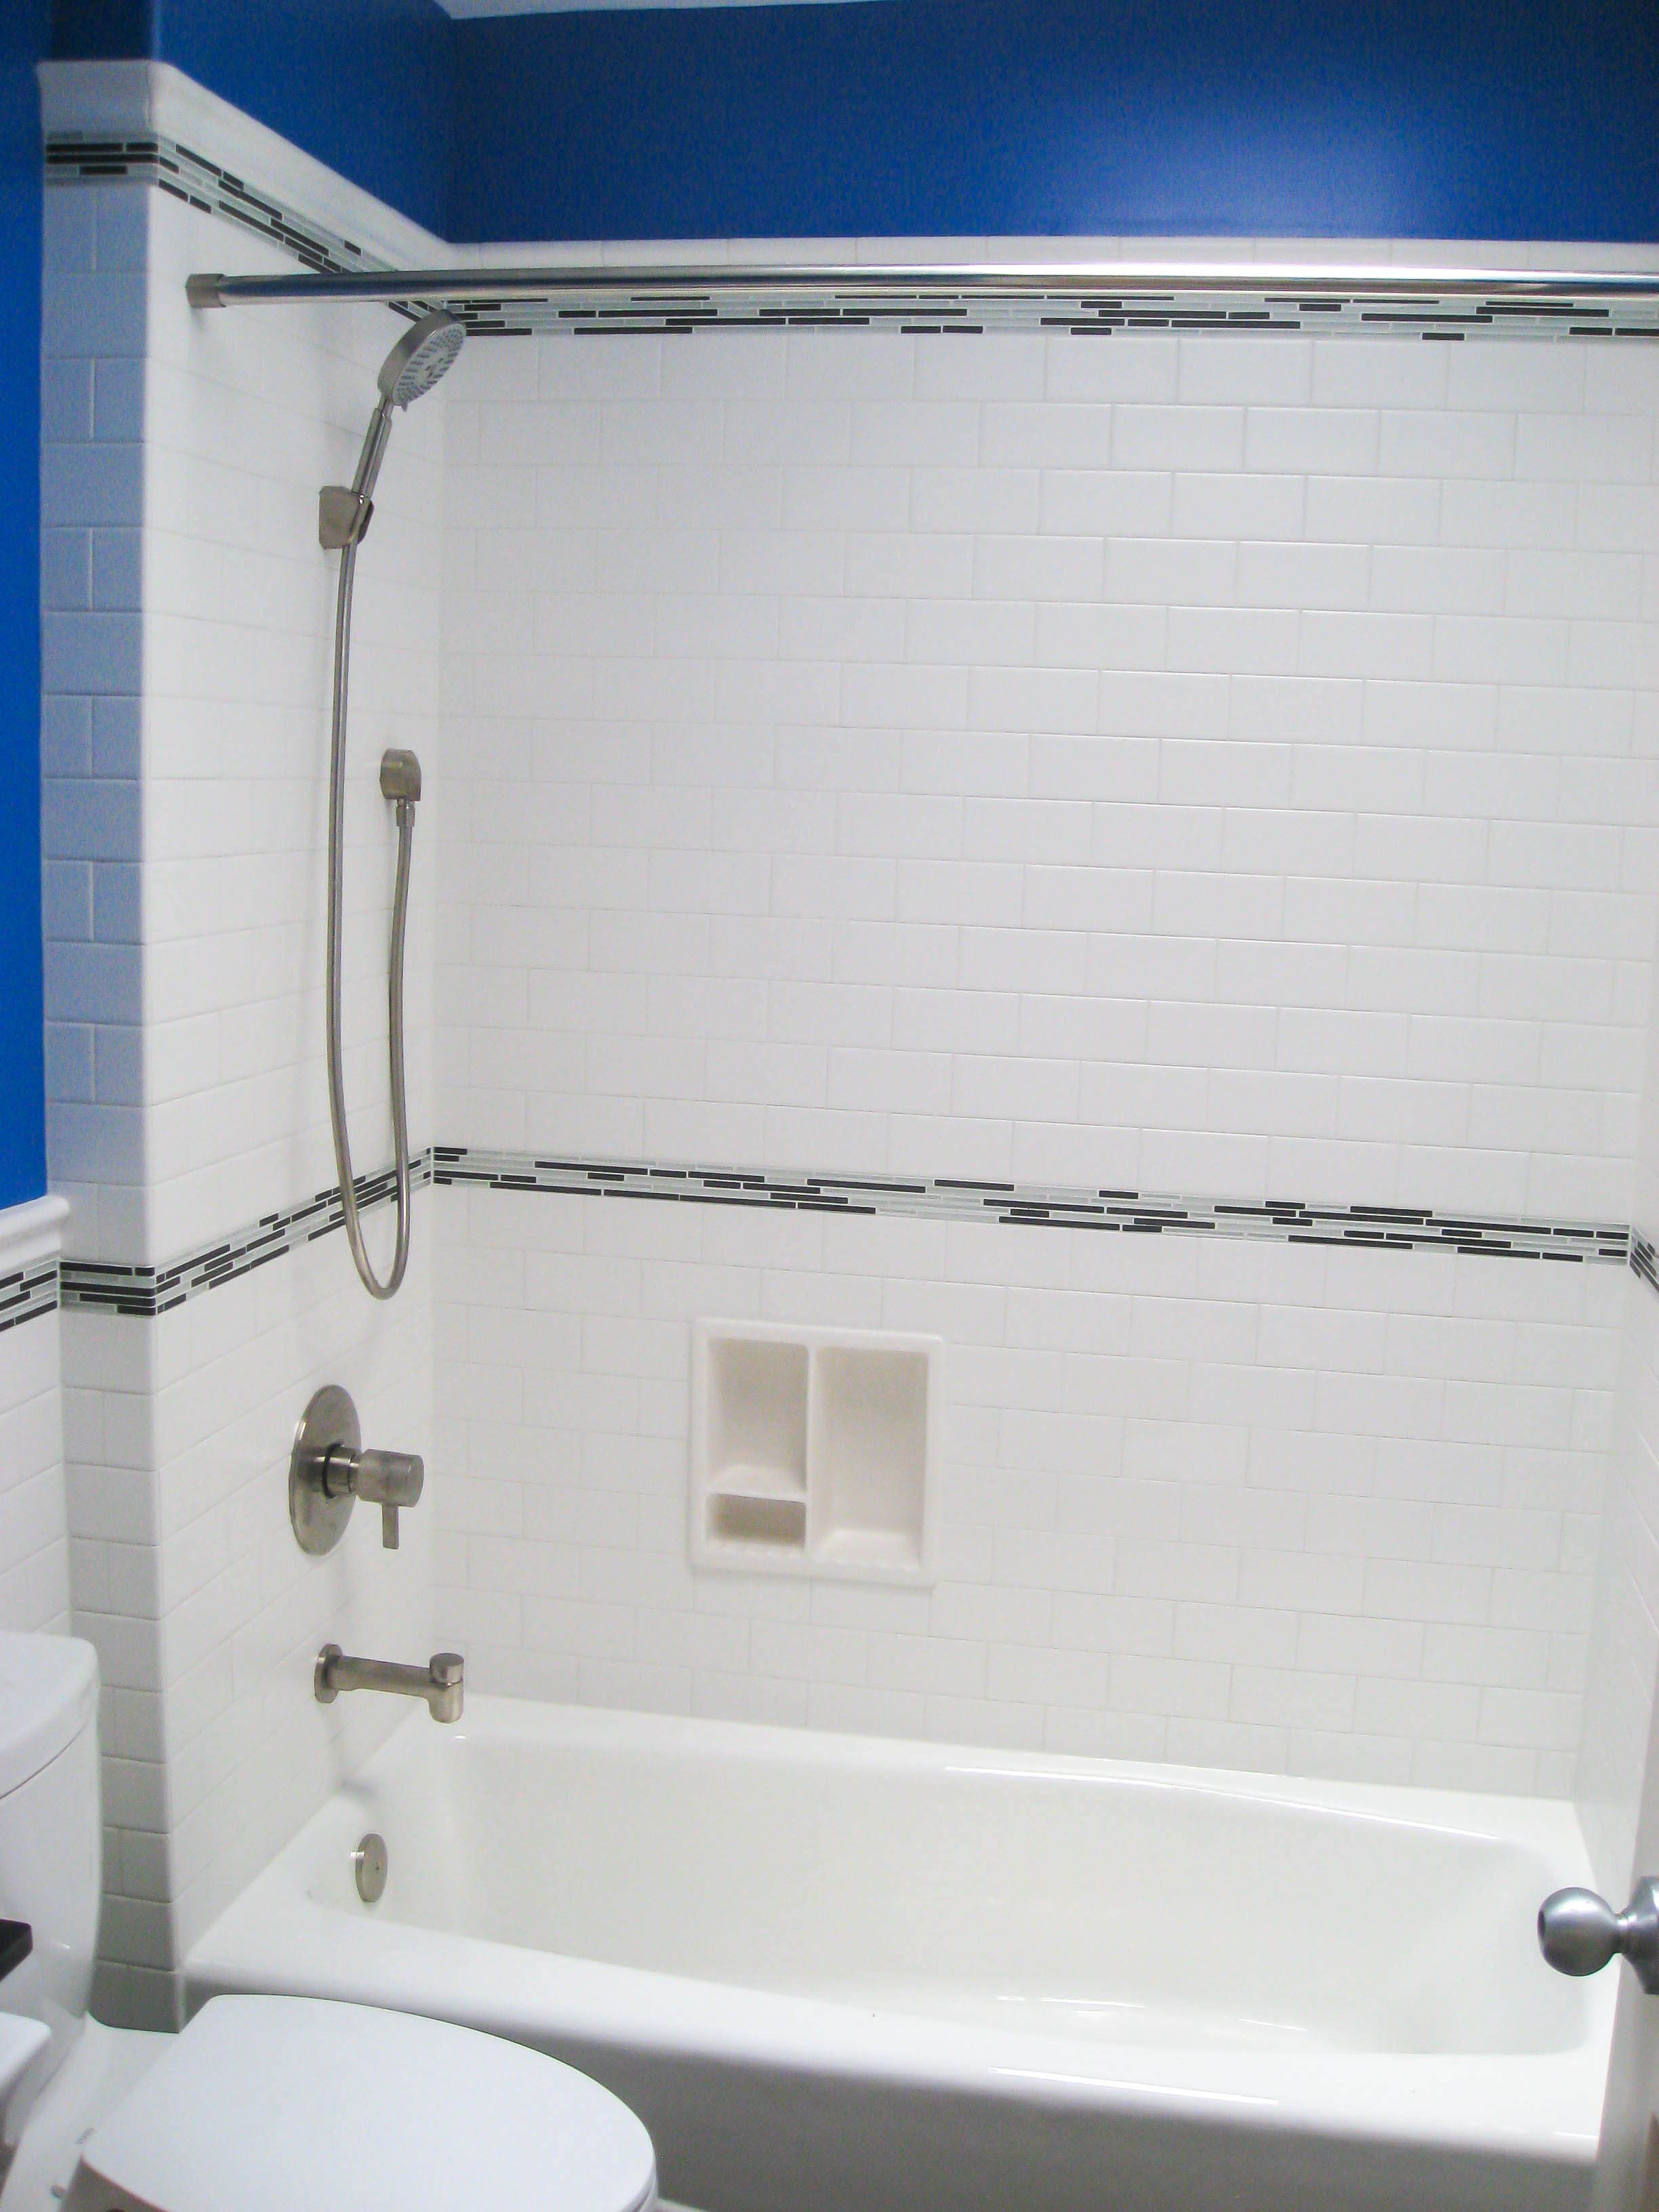 Exciting shower inserts for bathroom decor ideas with shower inserts lowes and shower tub inserts